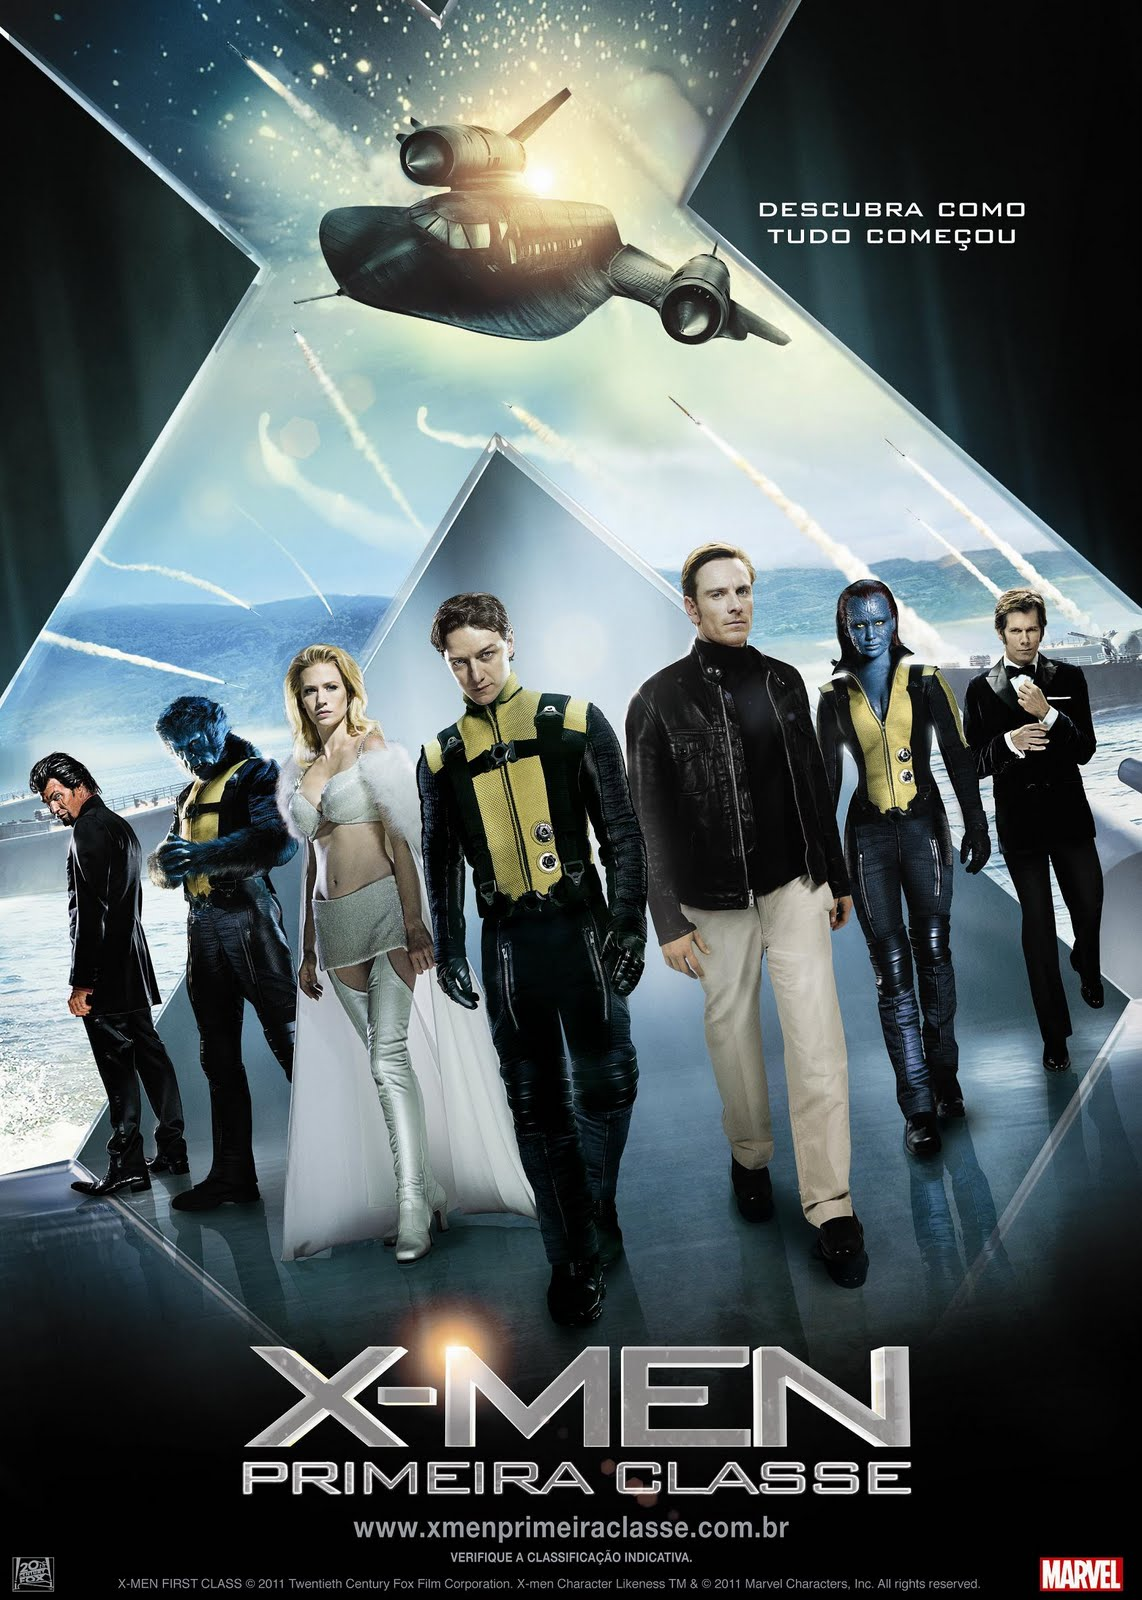 X-Men: Primeira Classe Full HD 1080p Blu-ray